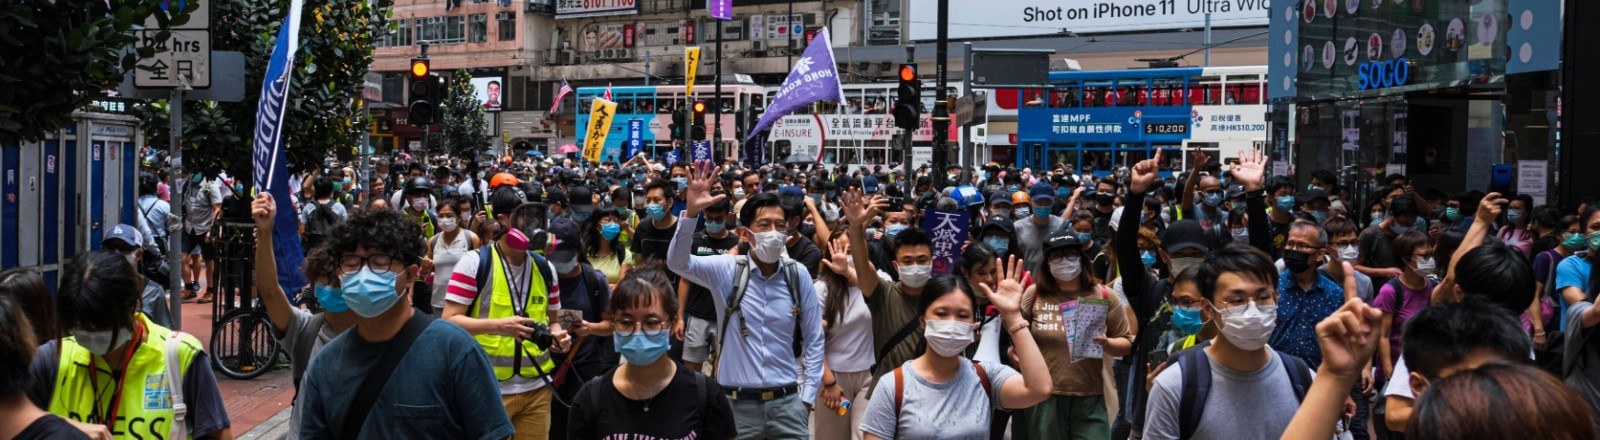 Protest in Hongkong am 24.05.2020